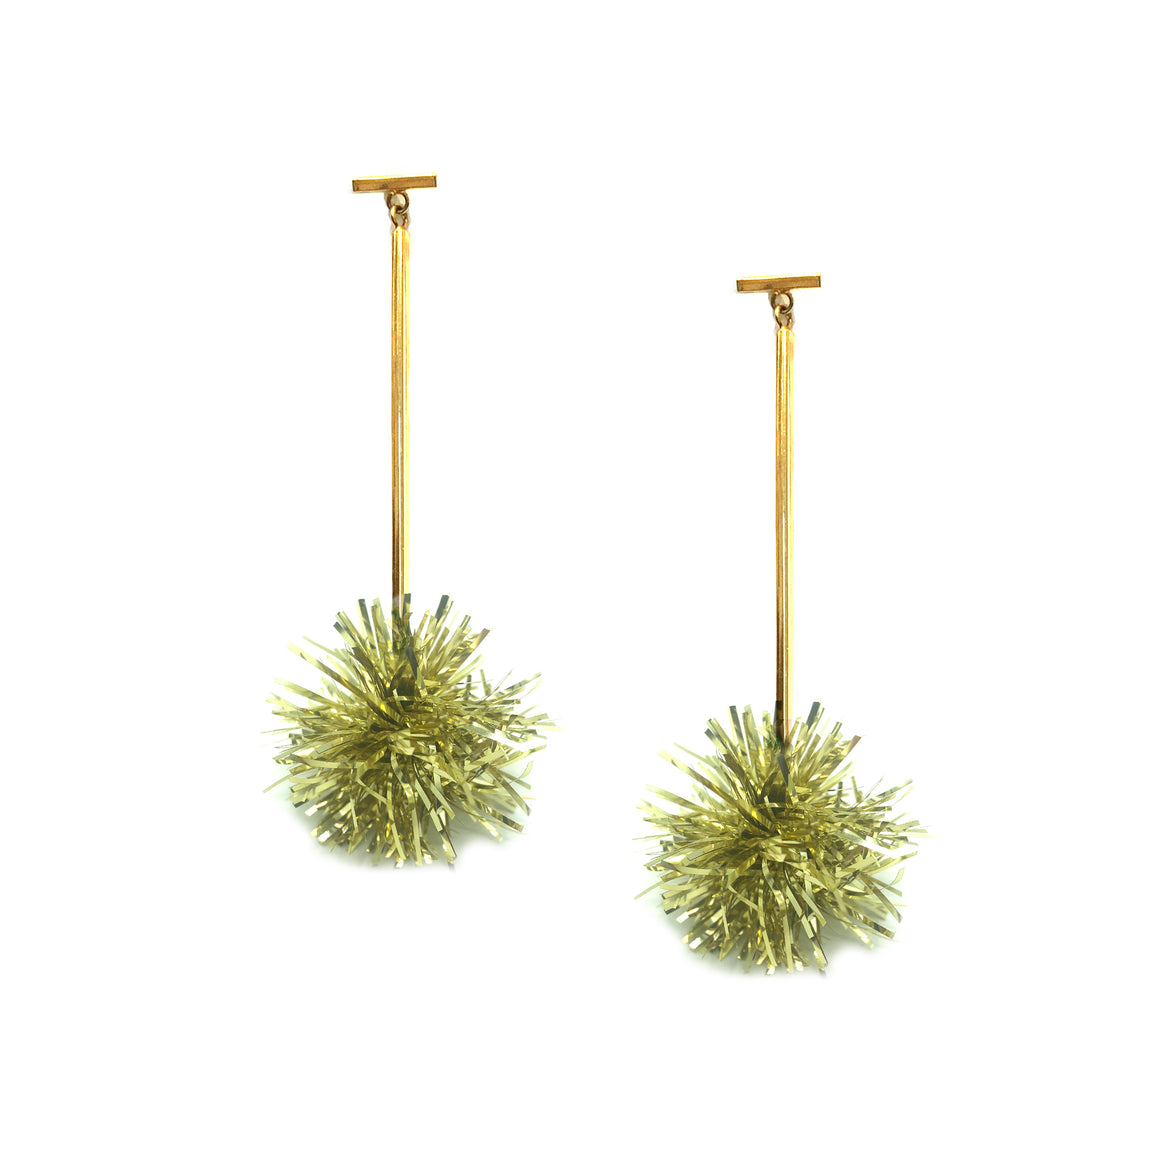 "1"" Gold Lurex Pom Pom T Bar Earrings, Earrings, Tuleste, Tuleste"